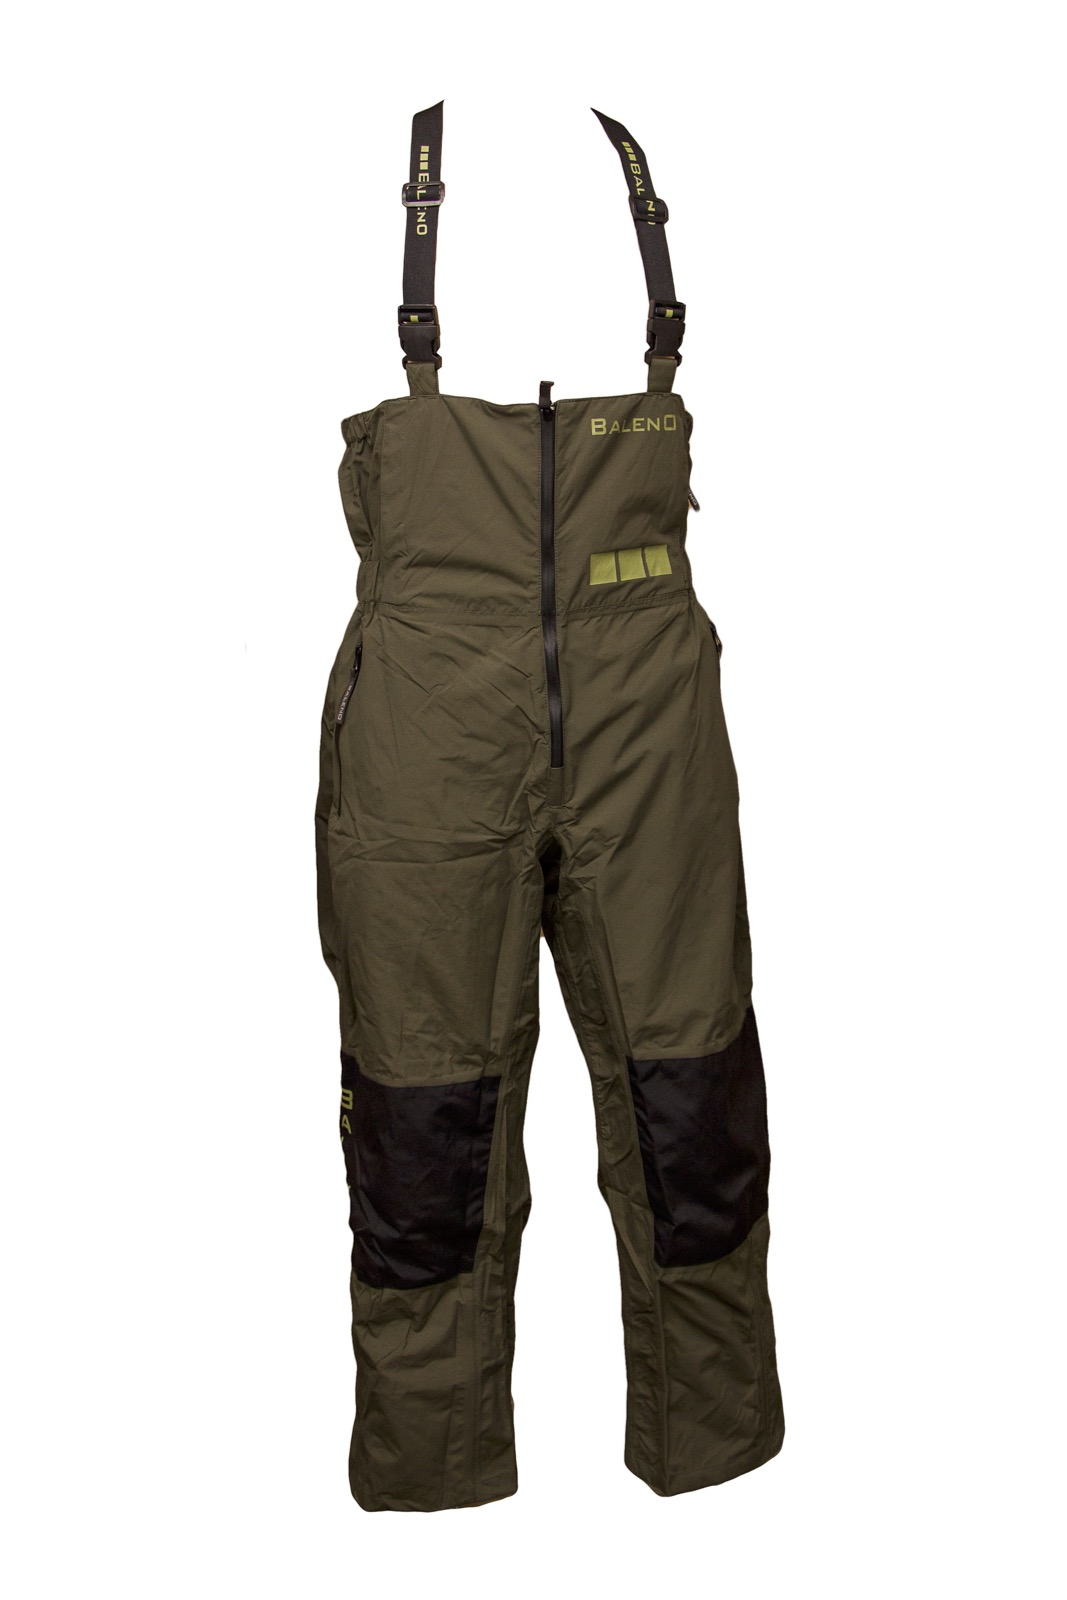 New baleno fishing ramsey waterproof bib brace trousers for Waterproof fishing bibs